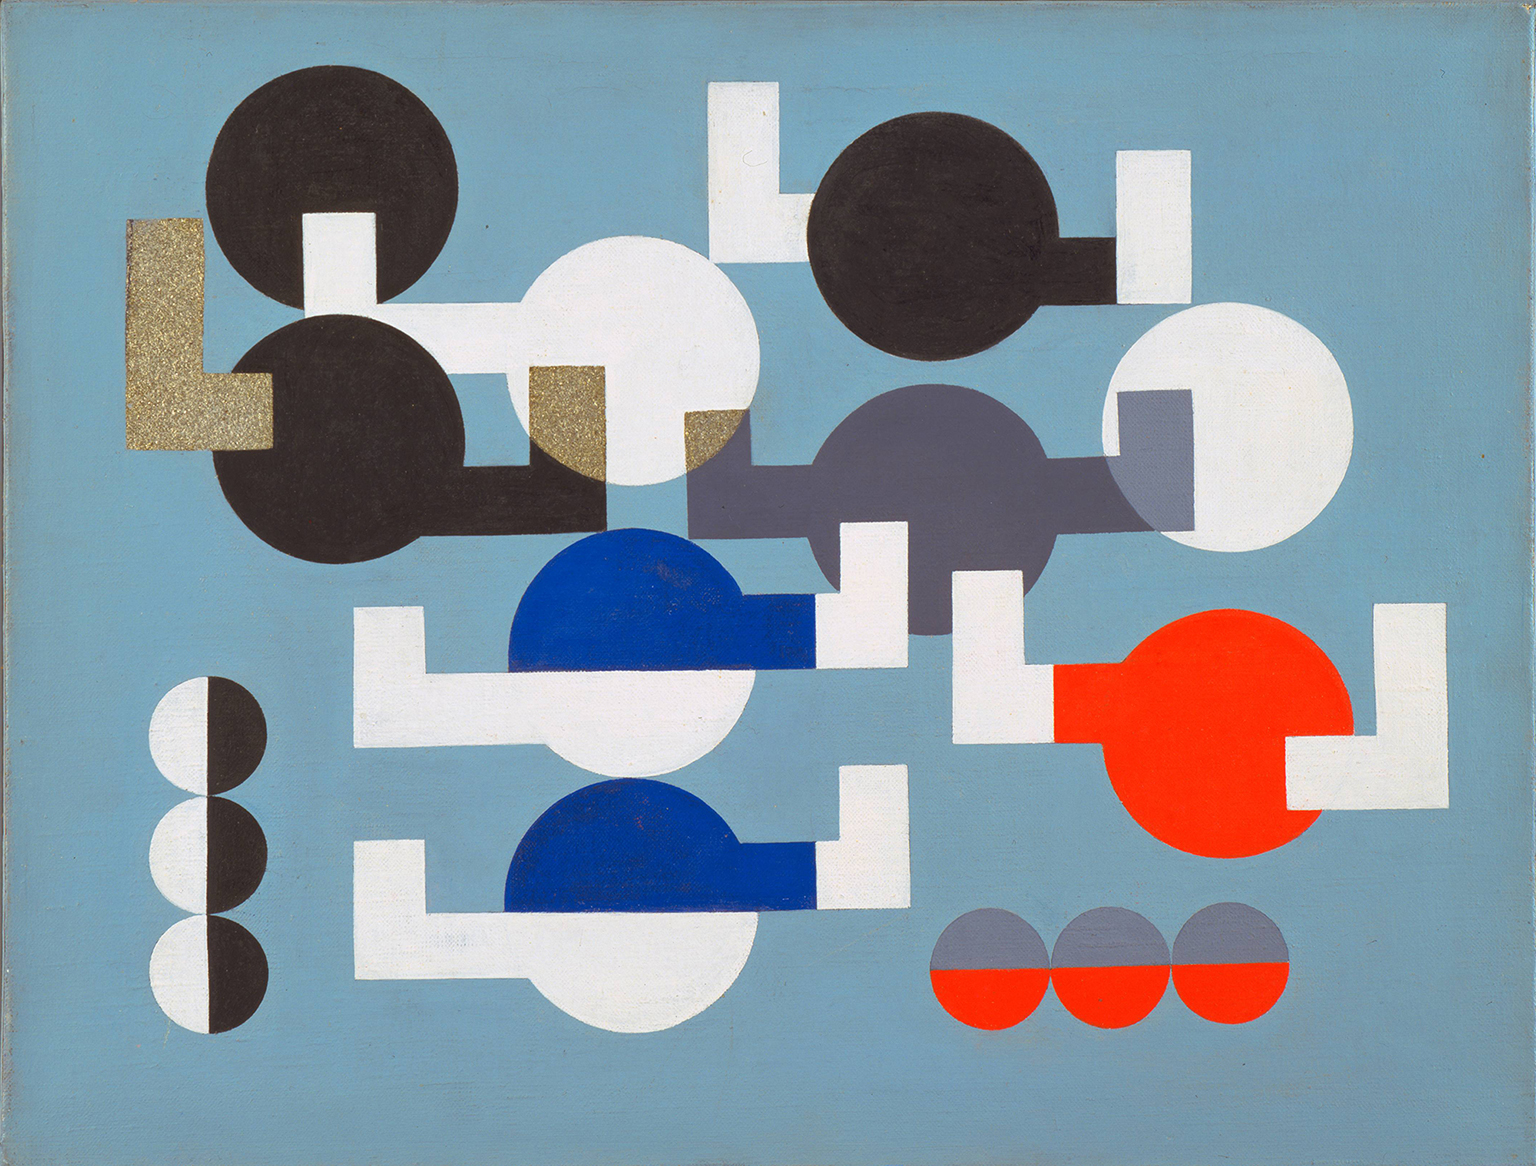 Sophie Taeuber-Arp, Composition of Circles and Overlapping Angles 1930, The Museum of Modern Art, New York. The Riklis Collection of McCrory Corporation.  Photo: The Museum of Modern Art, Department of Imaging and Visual Resources.